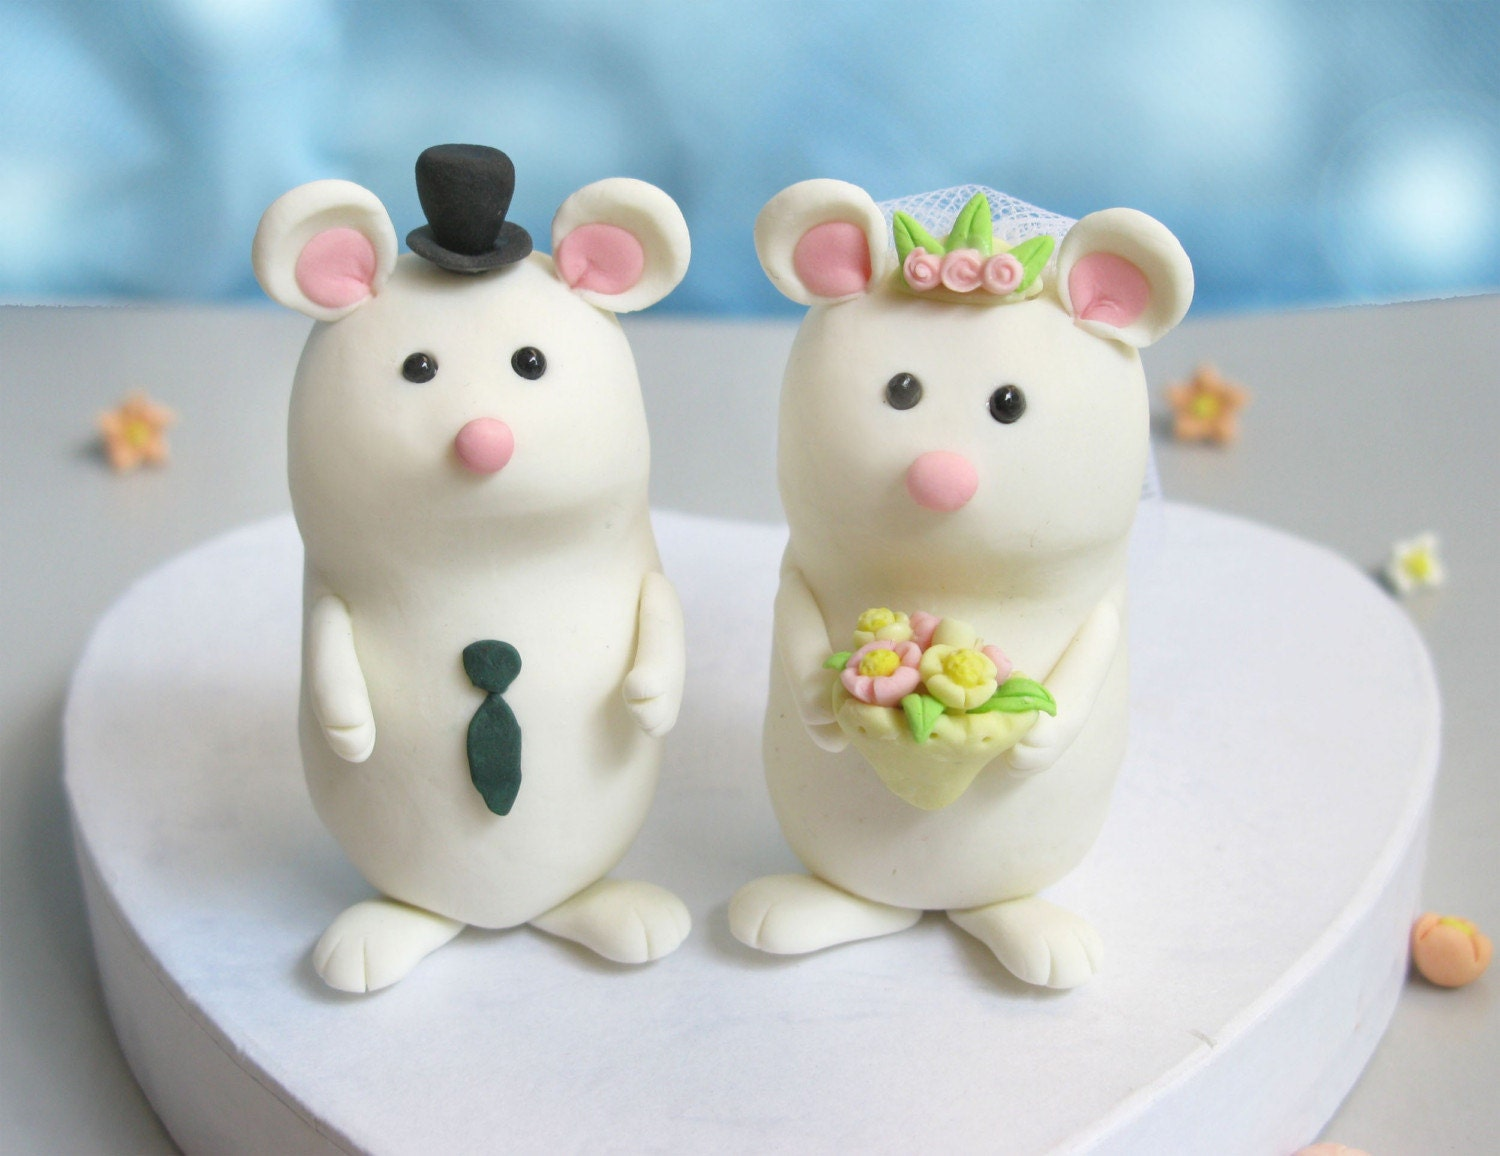 Elegant mice wedding cake toppers with stand by PassionArte